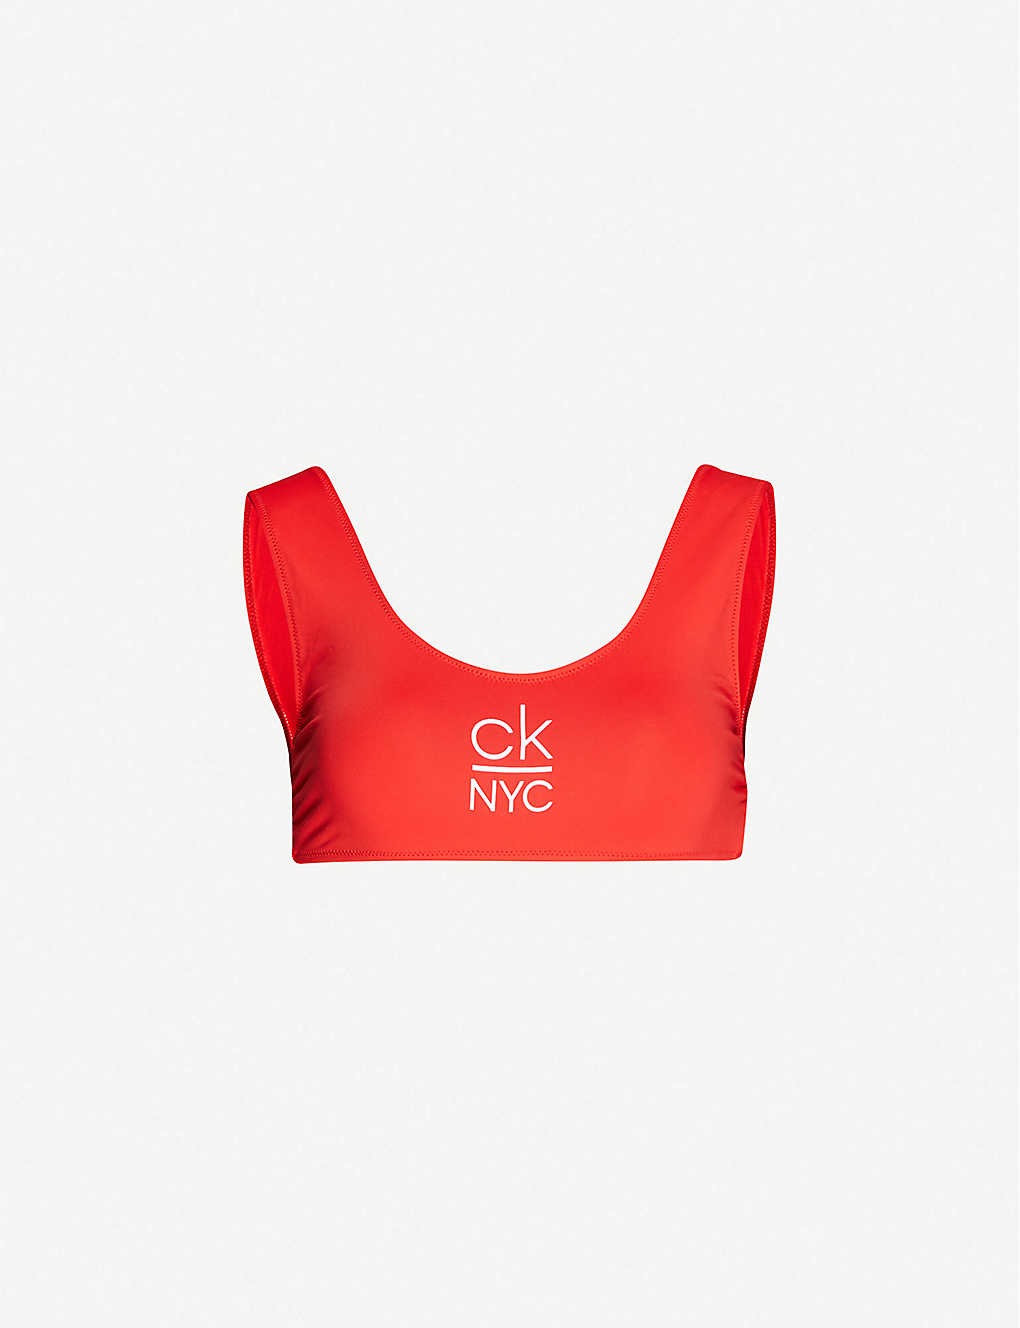 CALVIN KLEIN: CK NYC scoop-neck bikini top